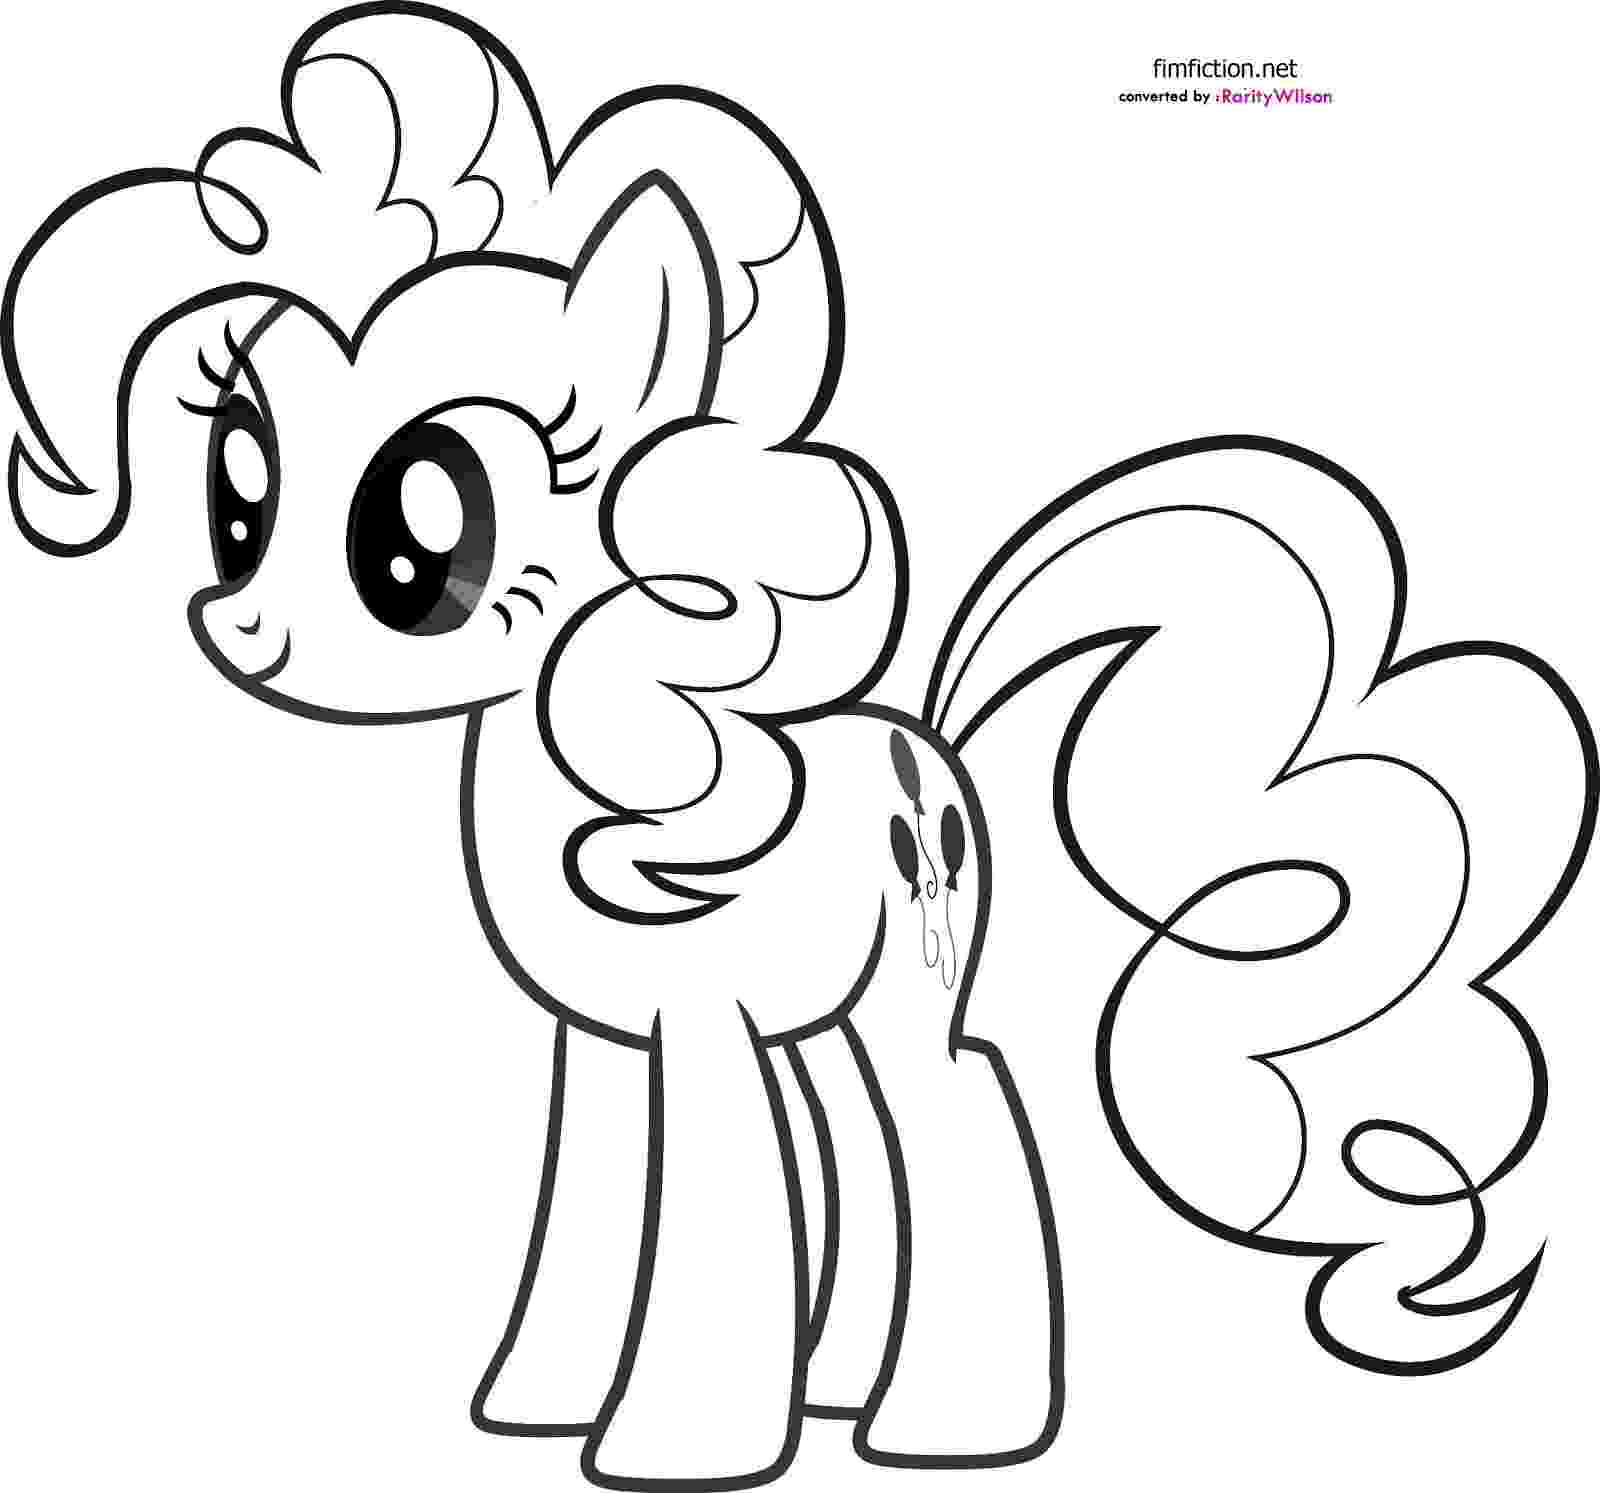 coloring pages of my little pony free printable my little pony coloring pages for kids coloring pages pony of little my